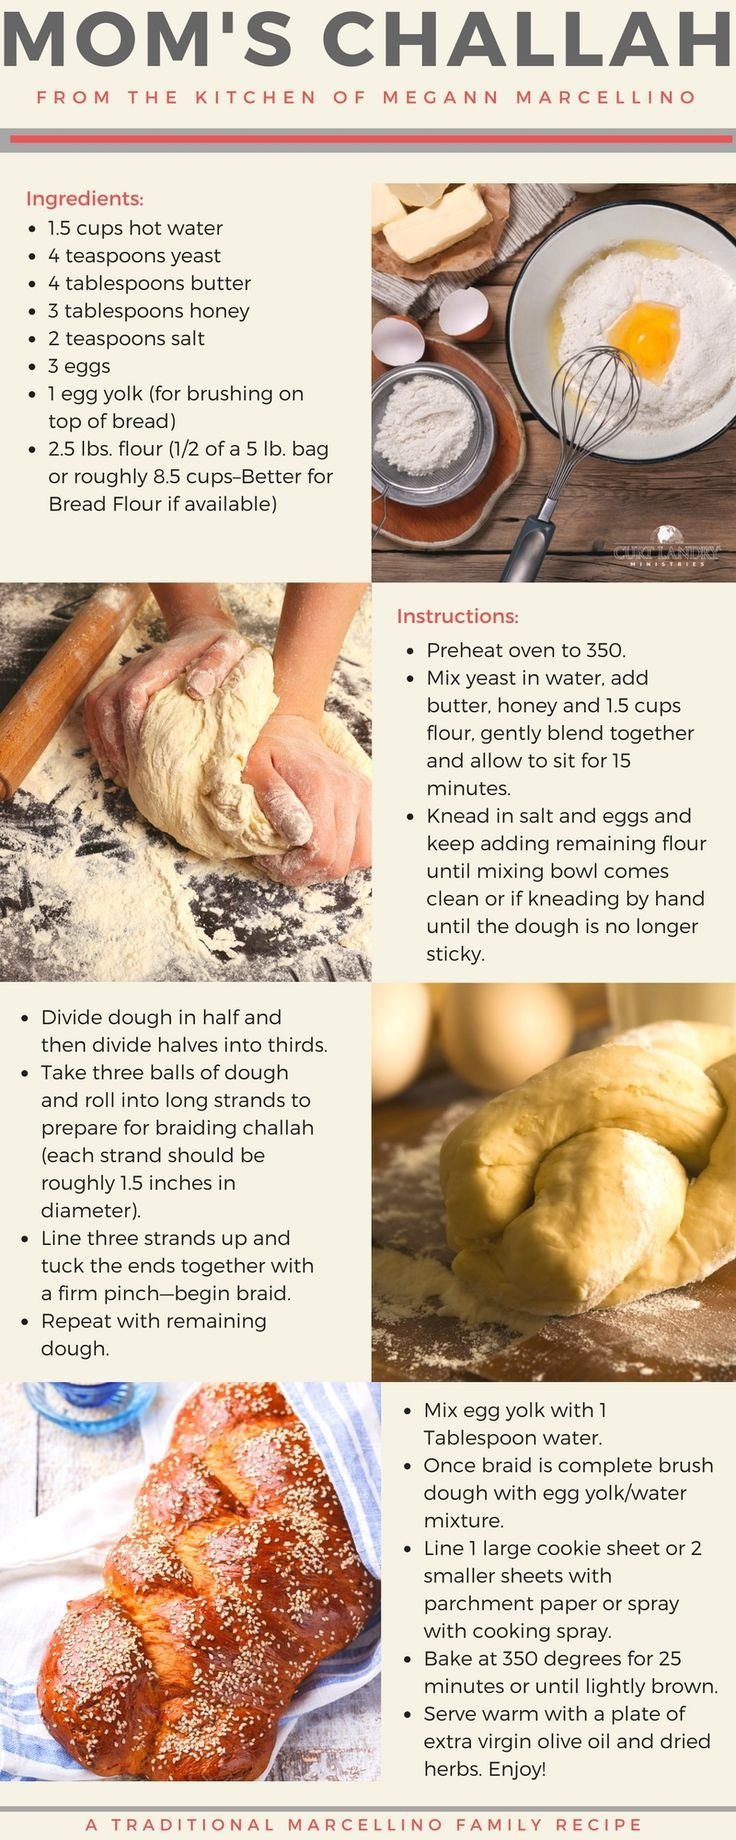 Mom's Challah: From the kitchen of Megann Marcellino